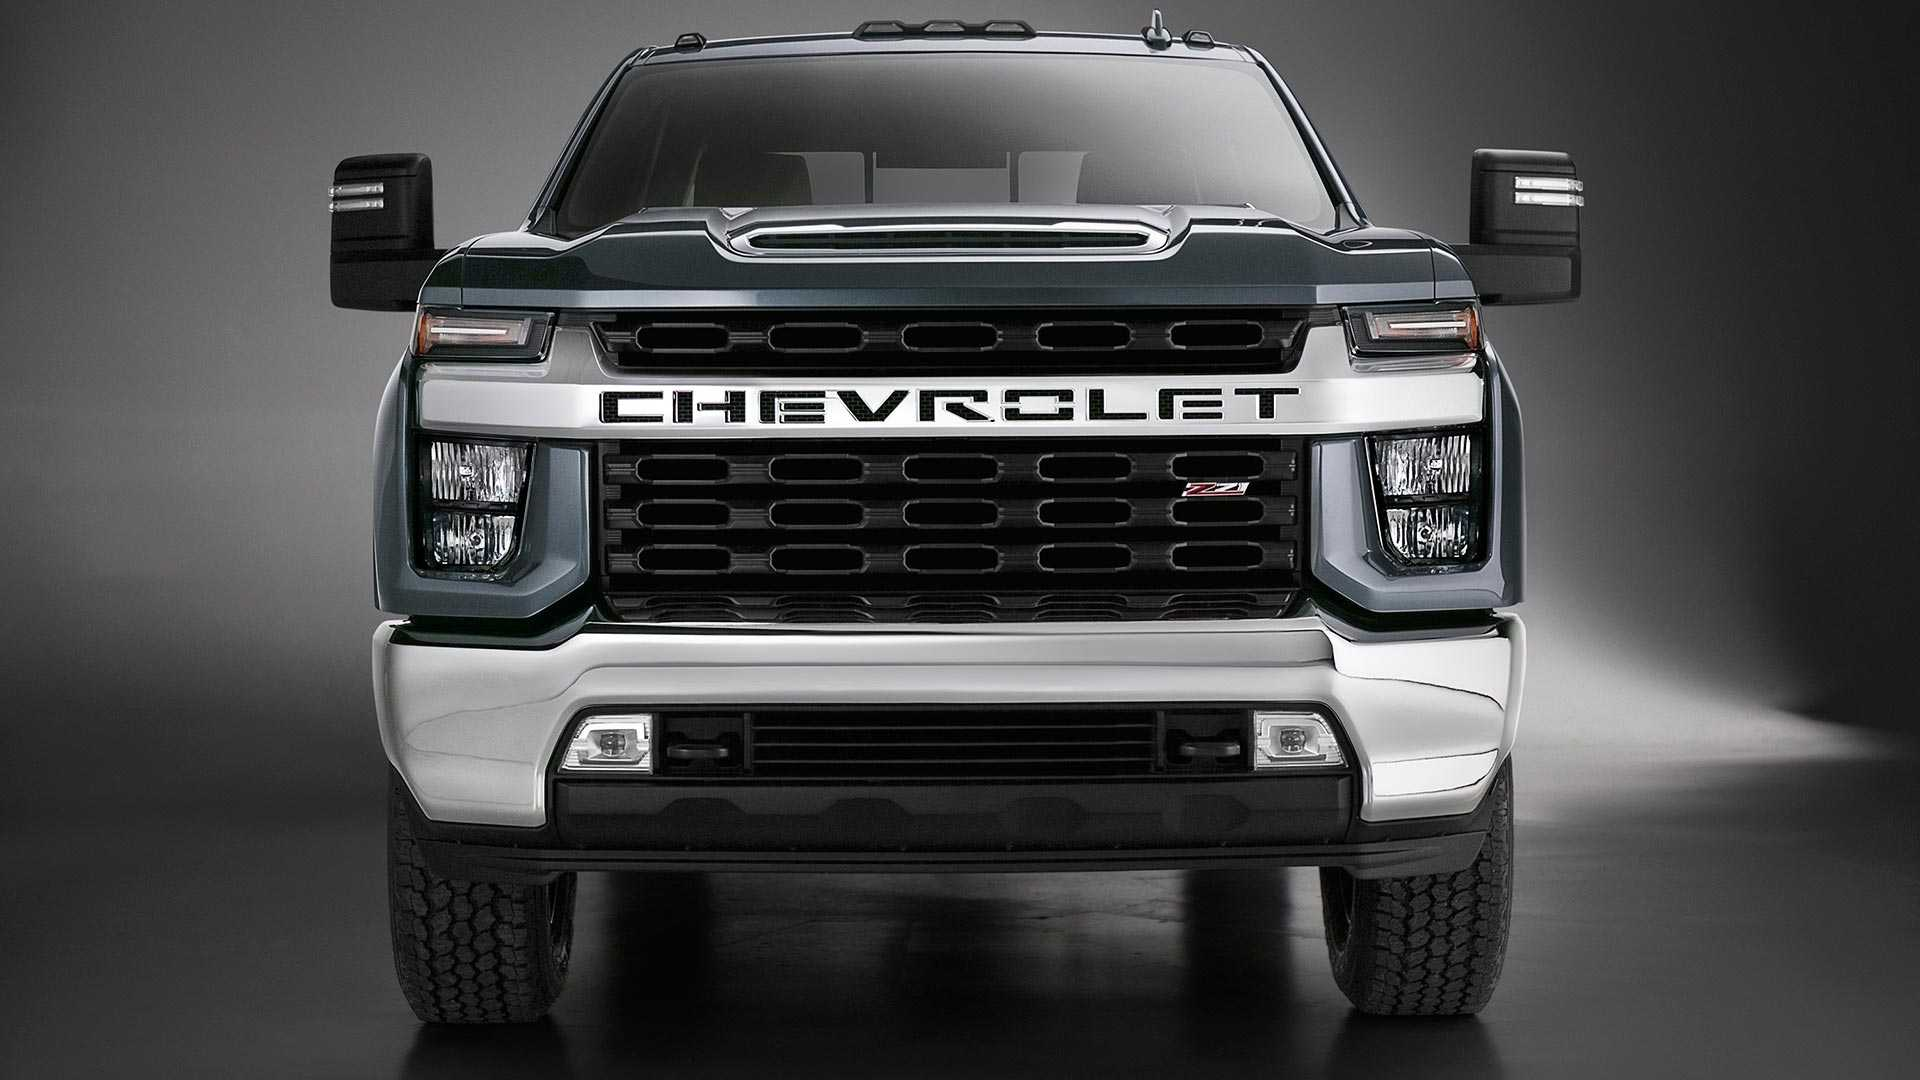 57 New 2020 Chevrolet Silverado Images Concept And Review